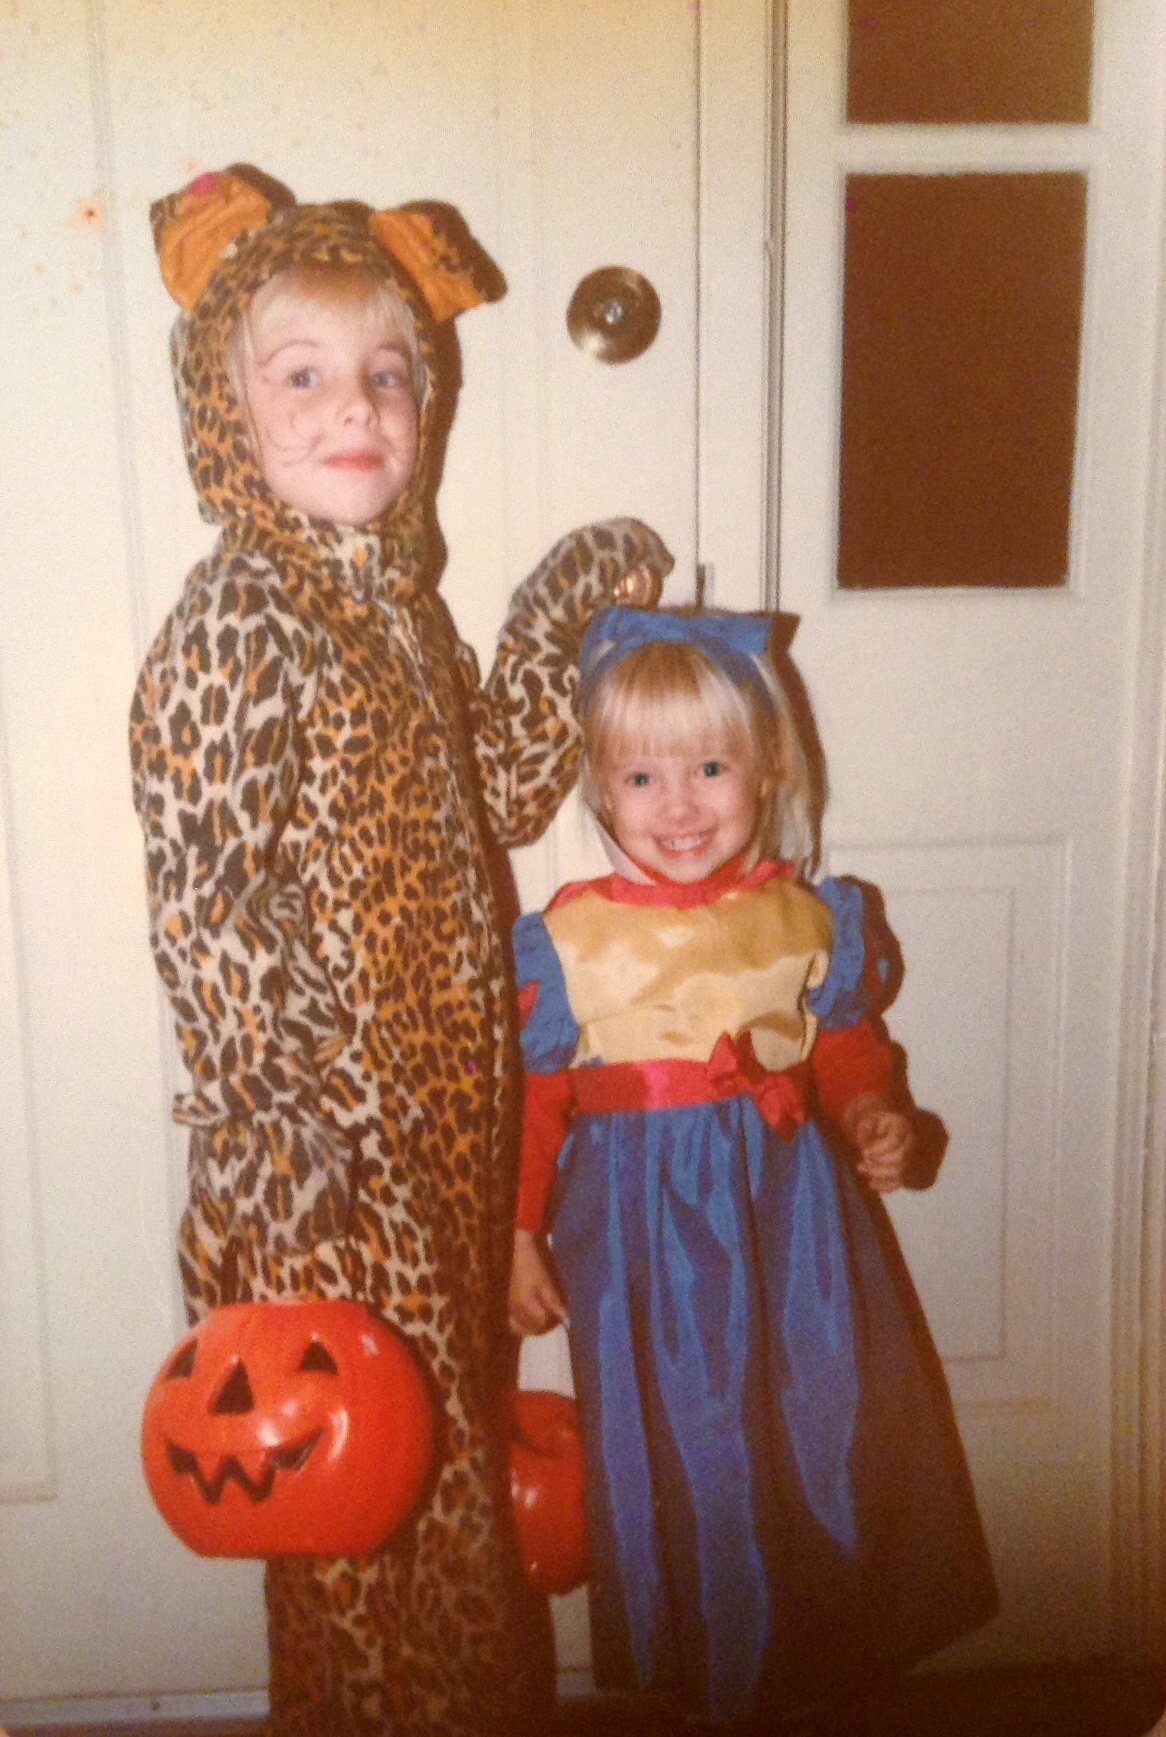 My Little Sister And Me, Circa 1985